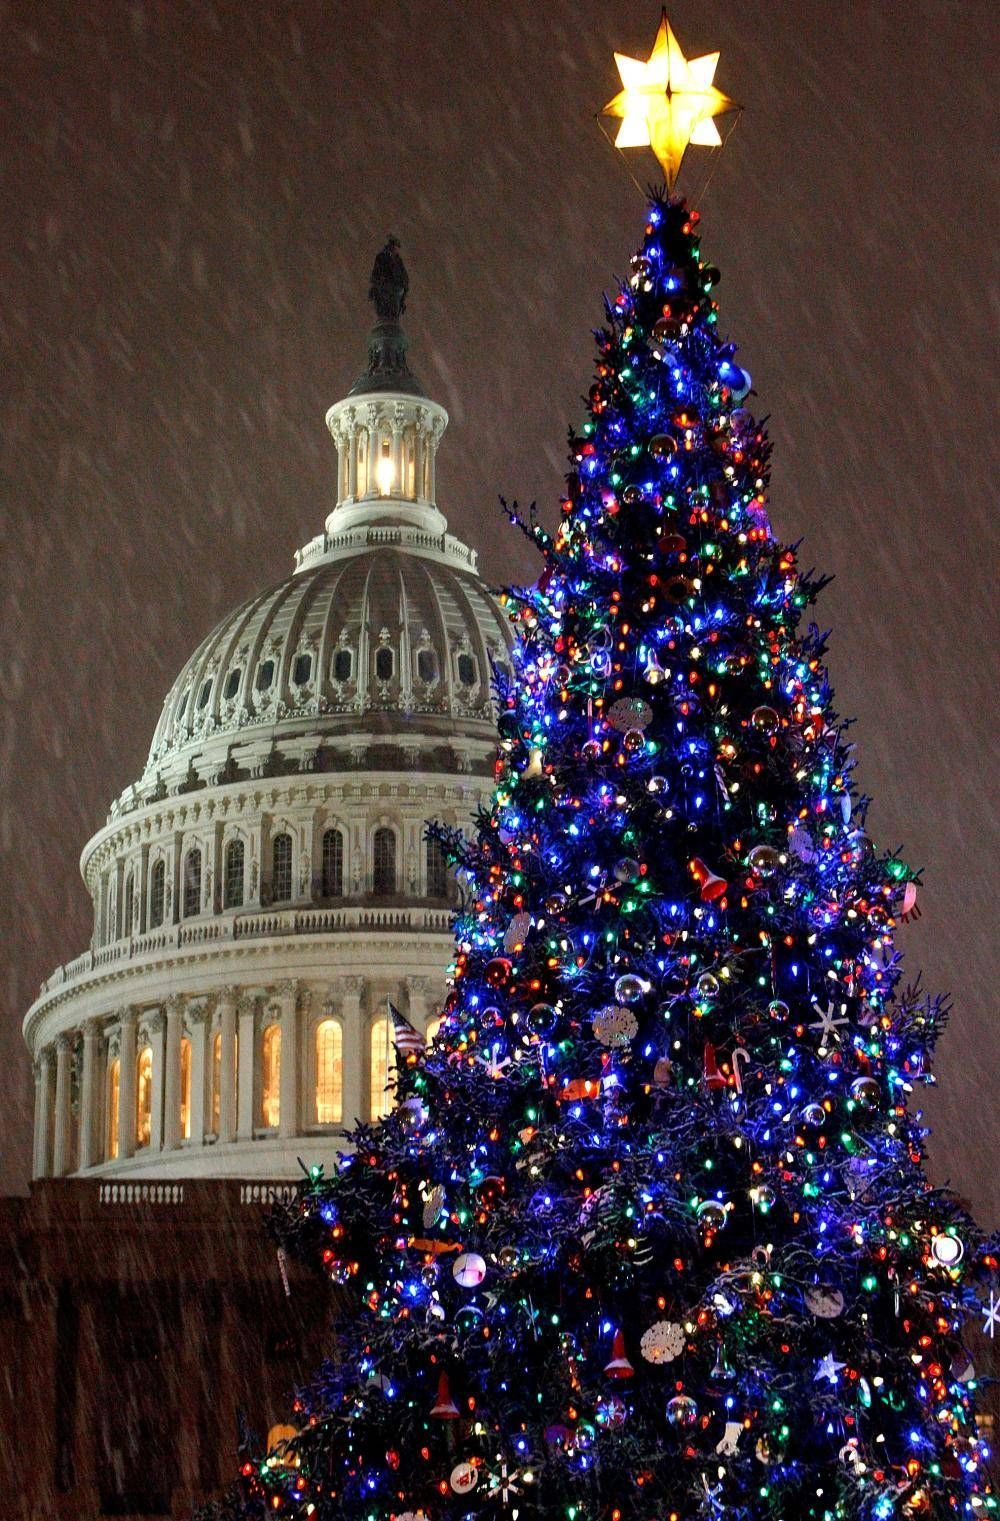 Christmas Traditions The Other Washington Christmas Tree Is The Capitol Christmas Tree Which Has Been An A Christmas Lights Christmas Tree Beautiful Christmas